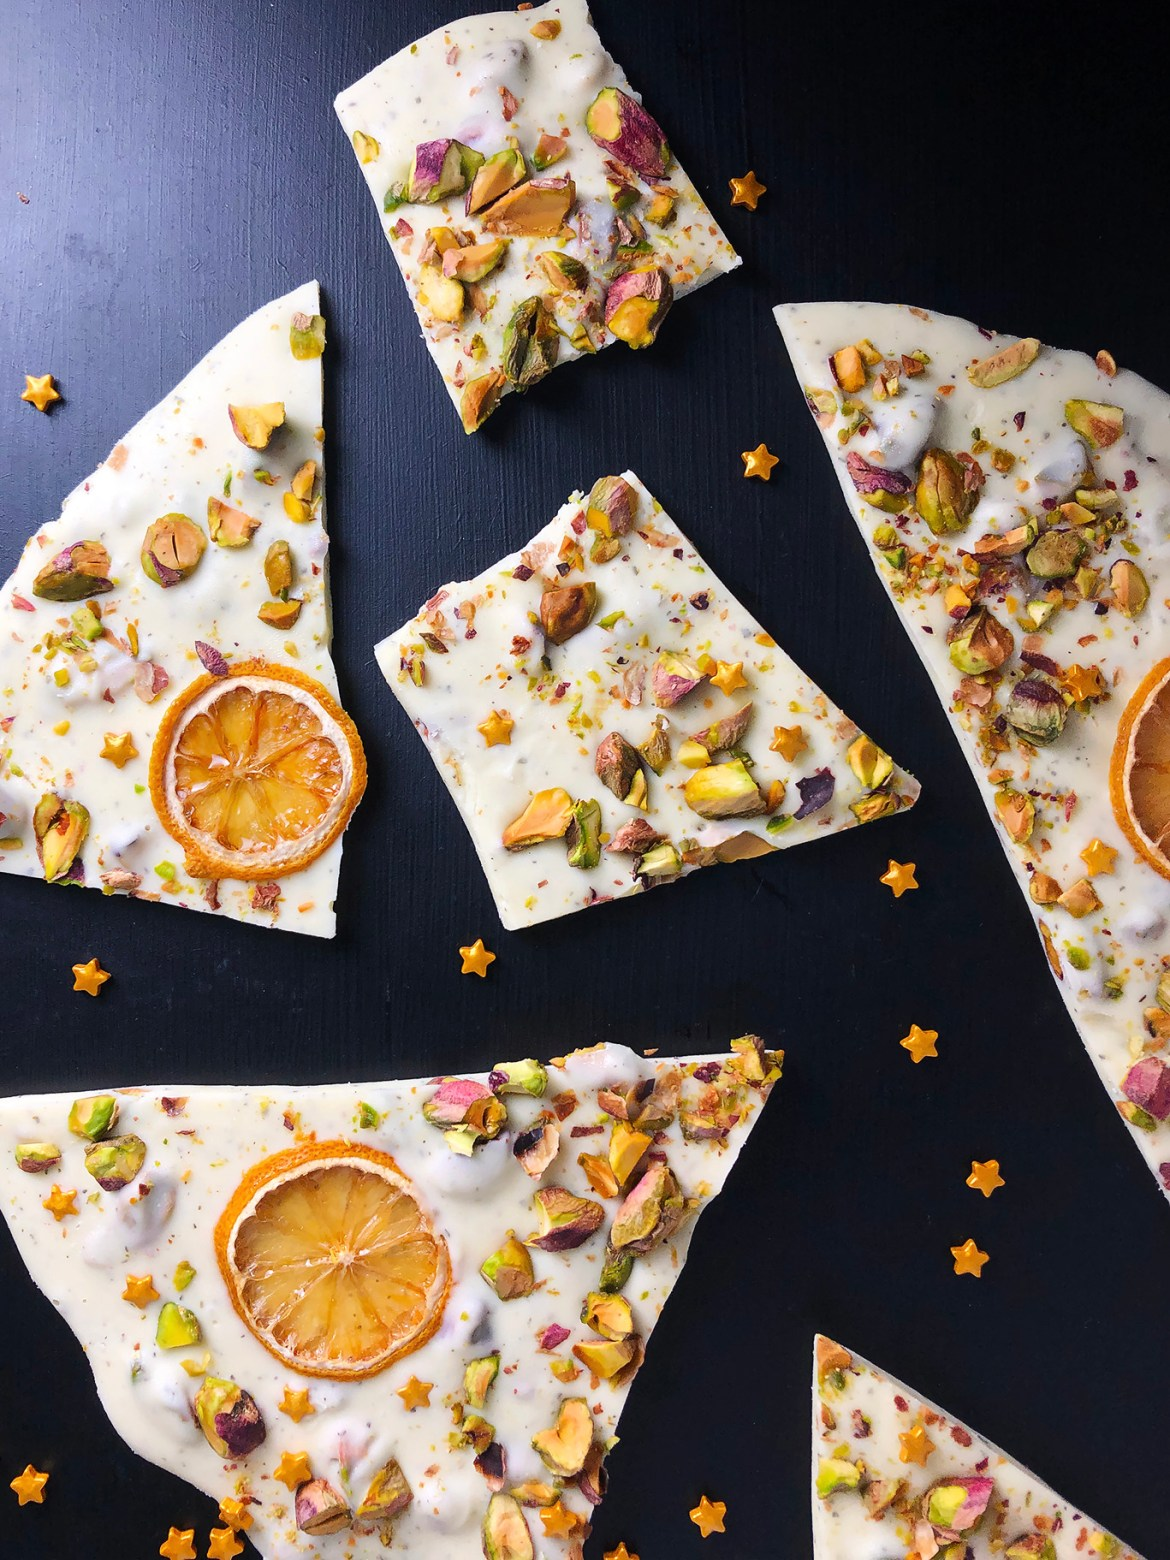 Top-down shot of white chocolate bark with lemon, green tea, pistachios, and oven-dried lemons, against a black background, sprinkled with gold candy stars.